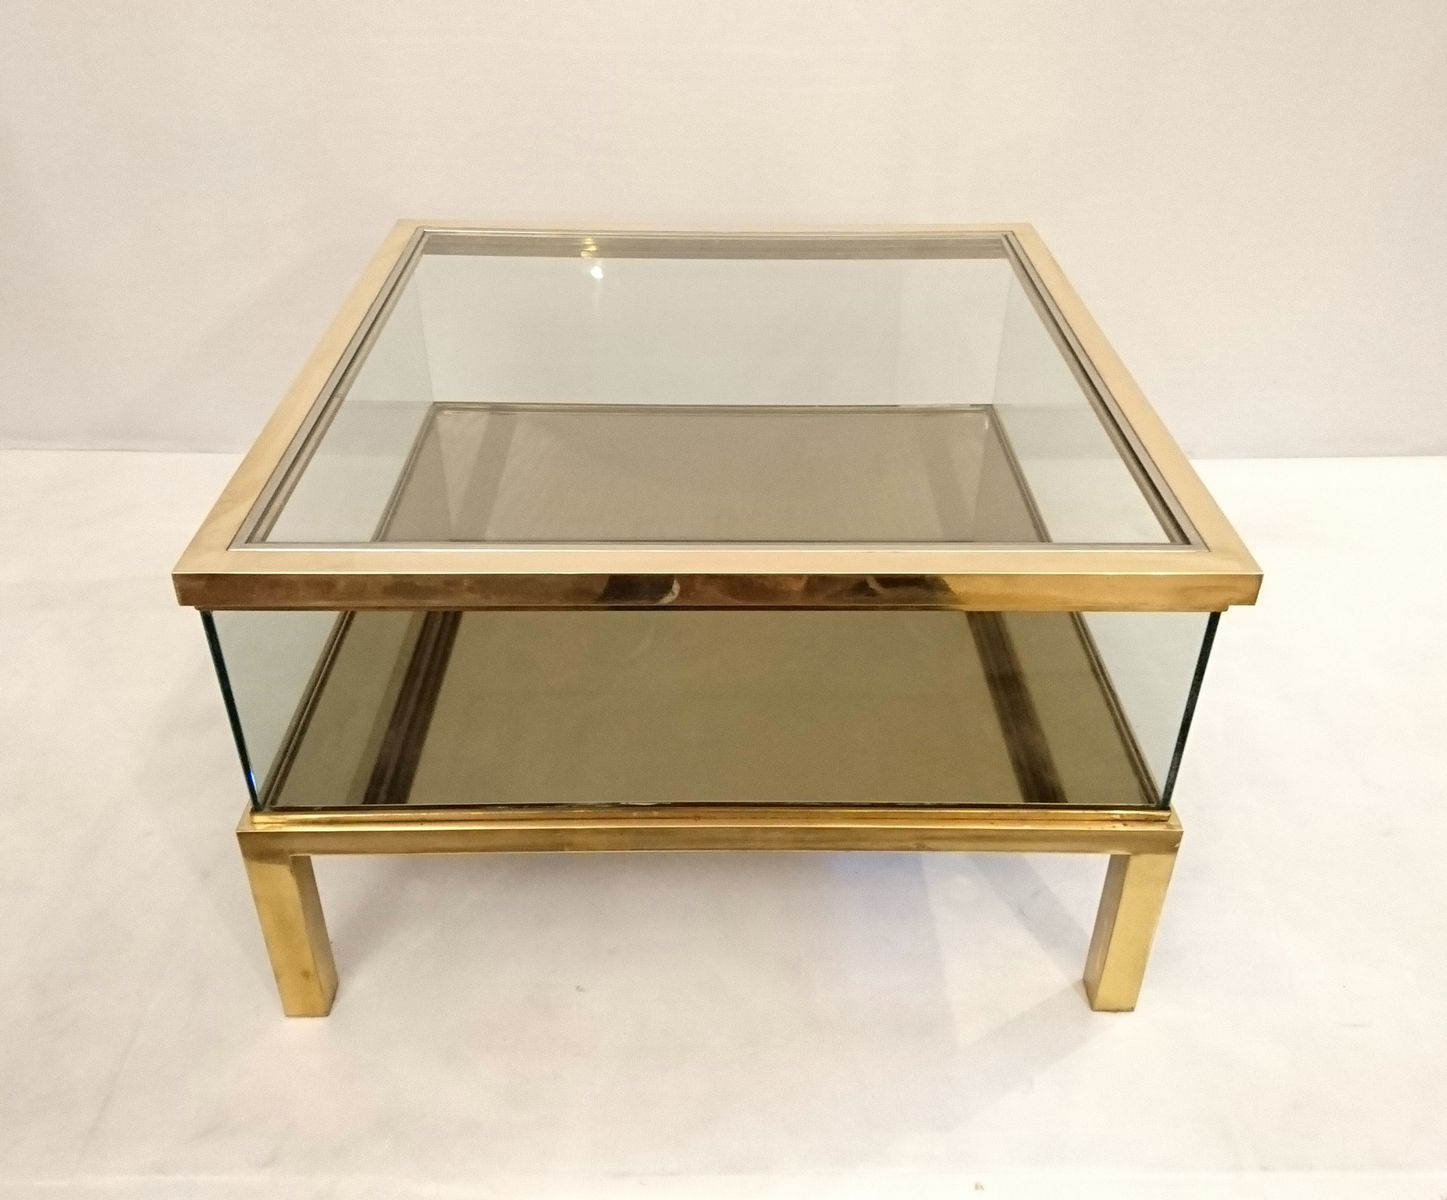 Vintage Italian Brass Sliding Top Coffee Table 3. previous - Vintage Italian Brass Sliding Top Coffee Table For Sale At Pamono